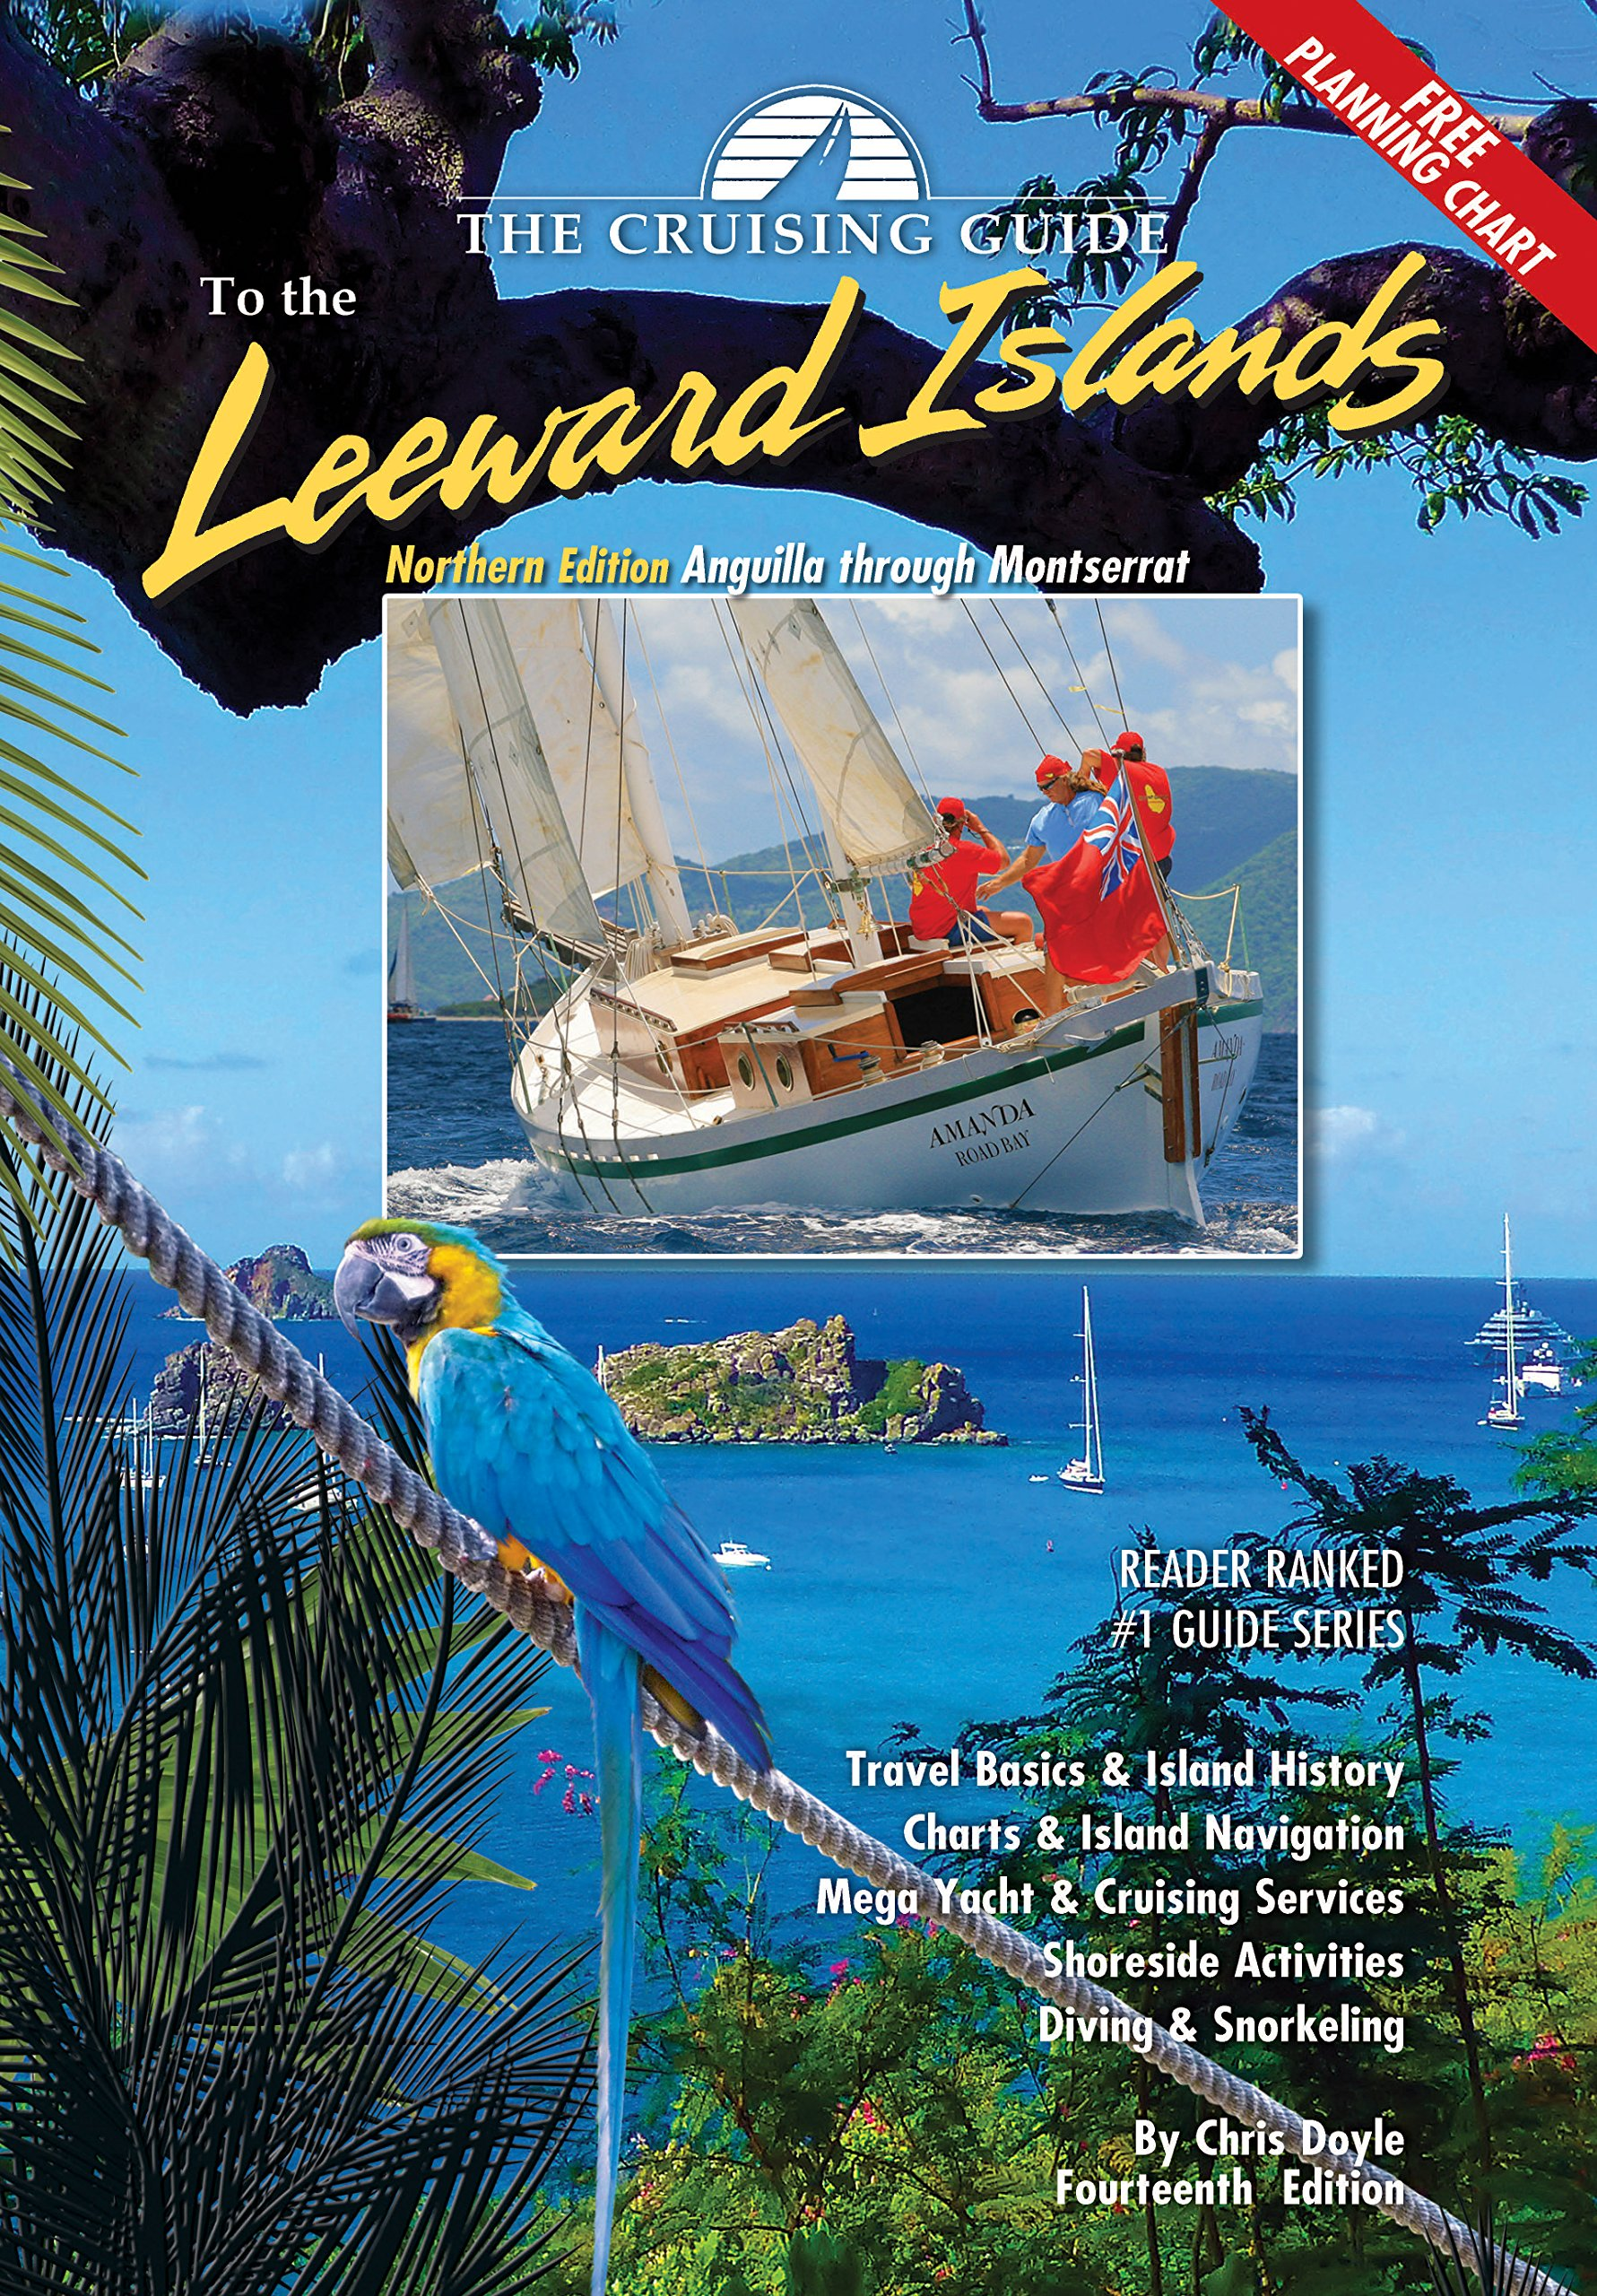 The Cruising Guide To The Northern Leward Islands  Anguilla Through Montserrat Northern Edition